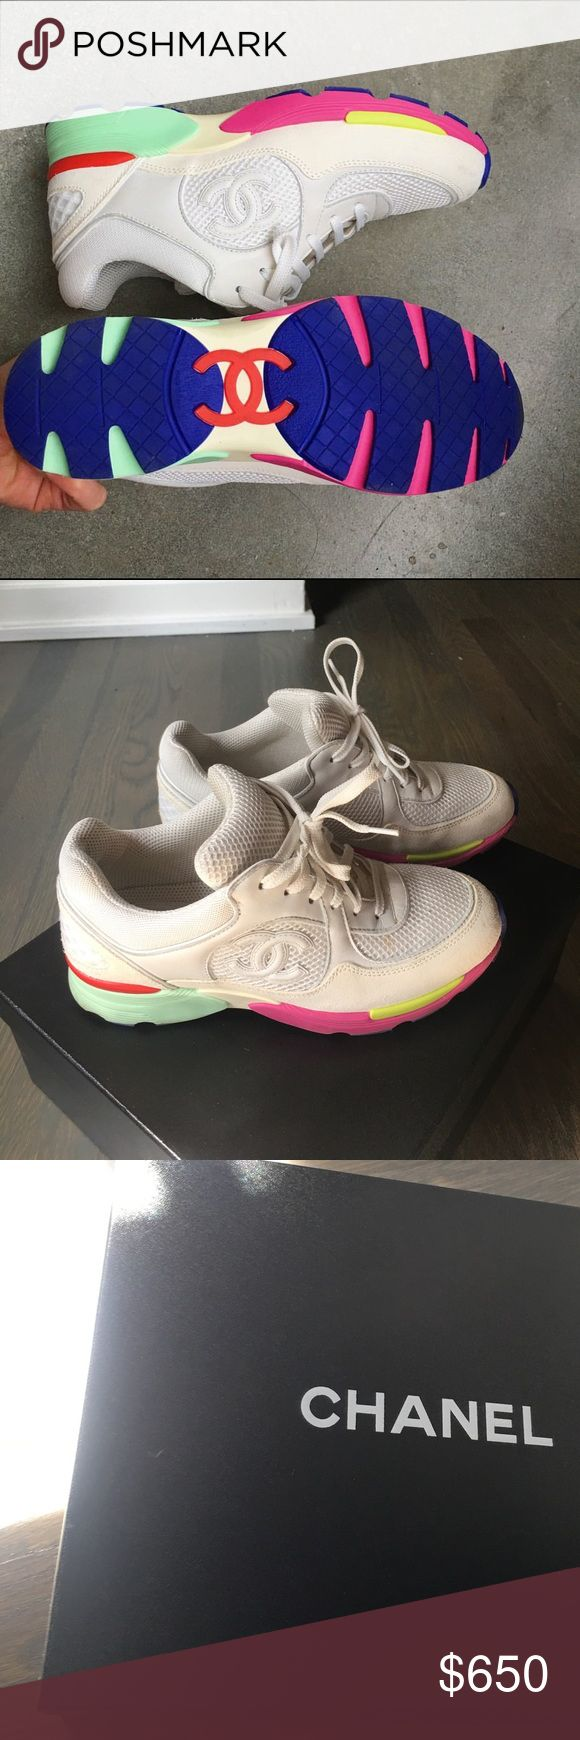 Colorful Chanel tennis shoes Neon sole colored Chanel sneakers with mesh and suede. Original box... only work probably 4 times total. CHANEL Shoes Sneakers